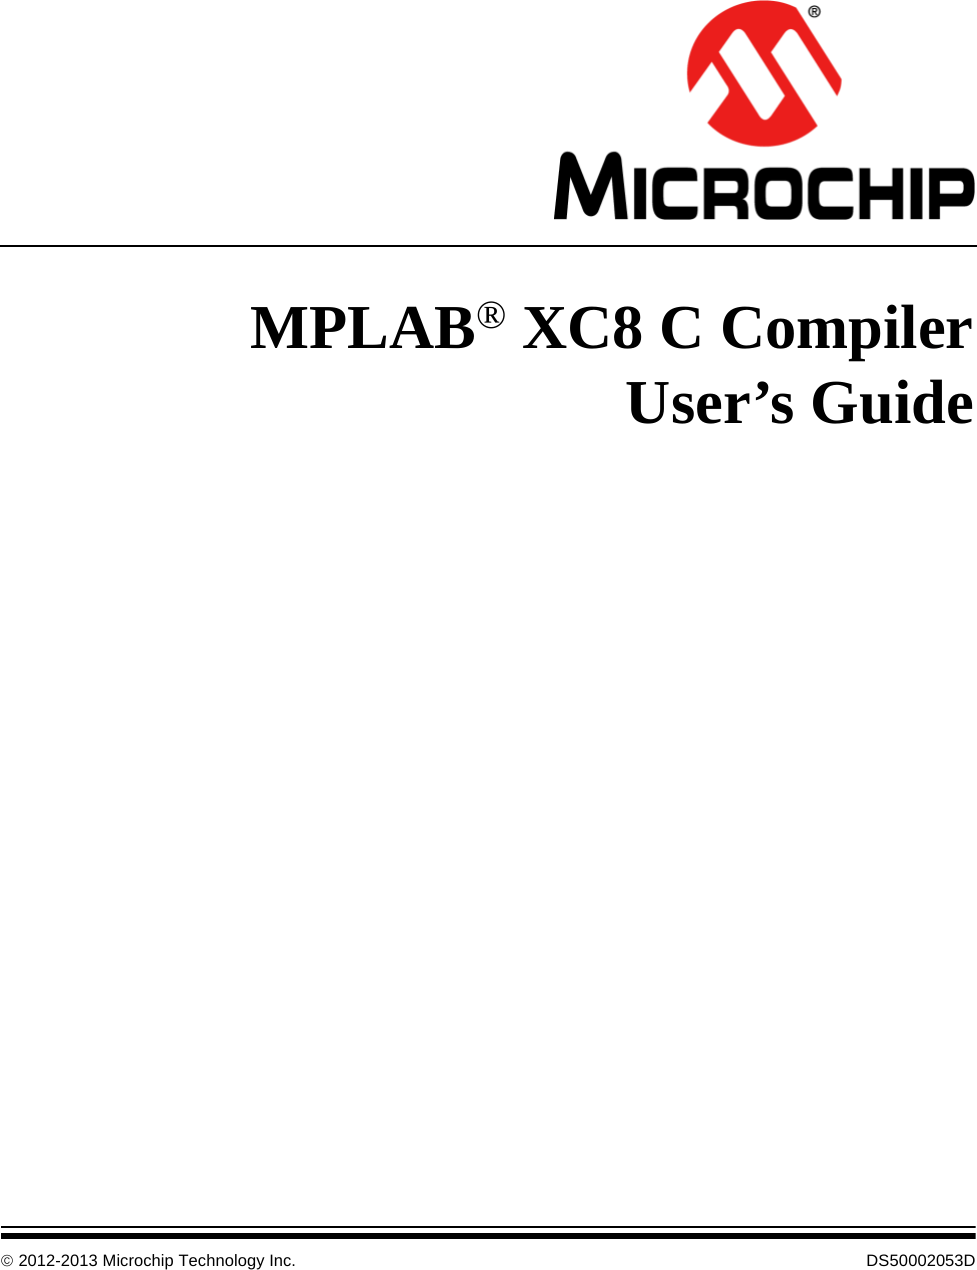 MPLAB XC8 C Compiler User's Guide User